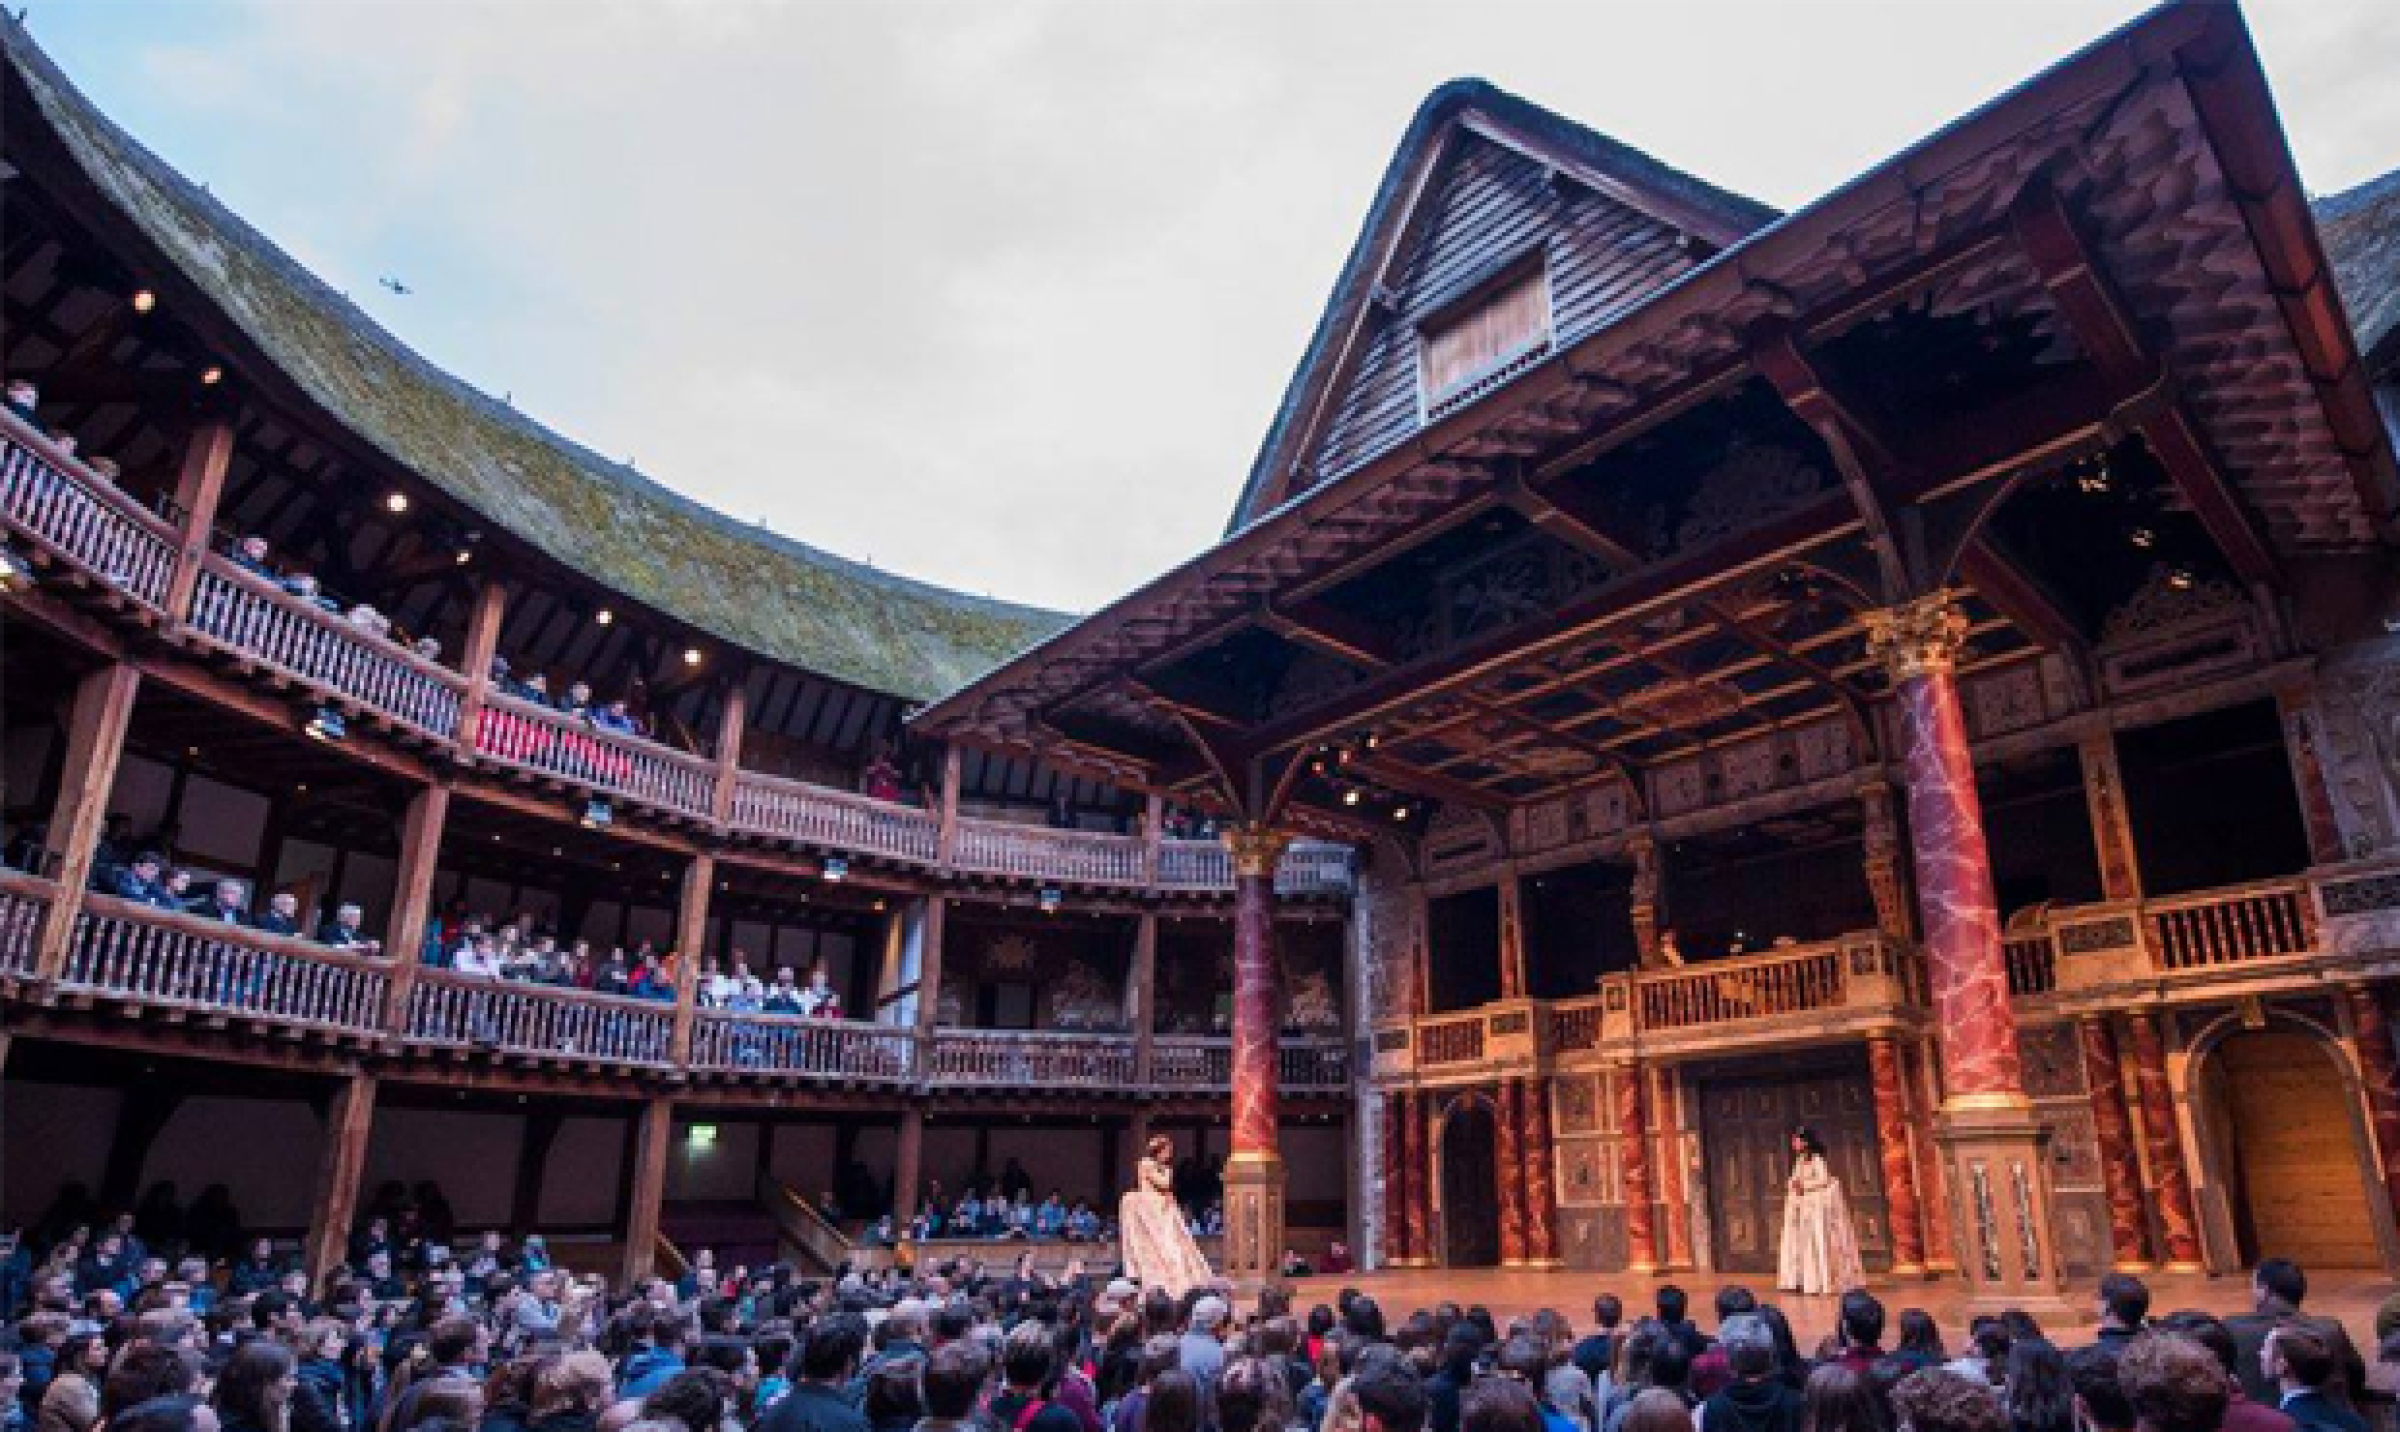 Shakespeare's Globe: 'Without emergency funding from government, we will  not be able to survive this crisis' | WhatsOnStage